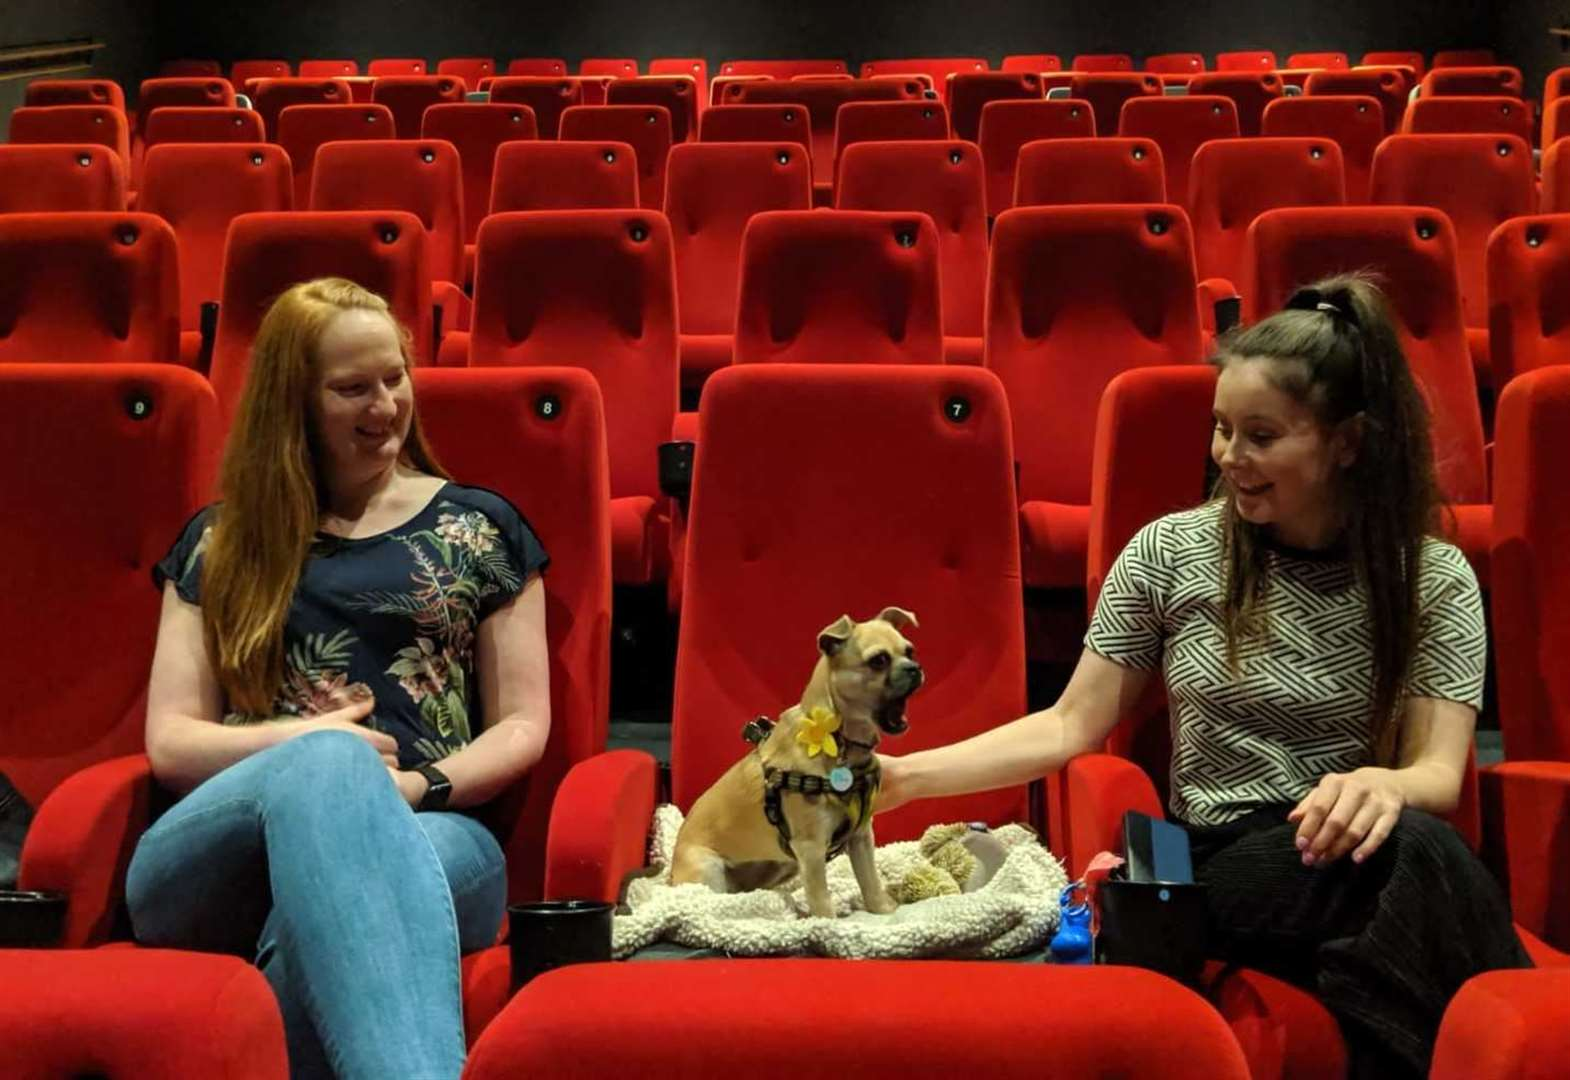 Fancy going to the cinema with your pooch?